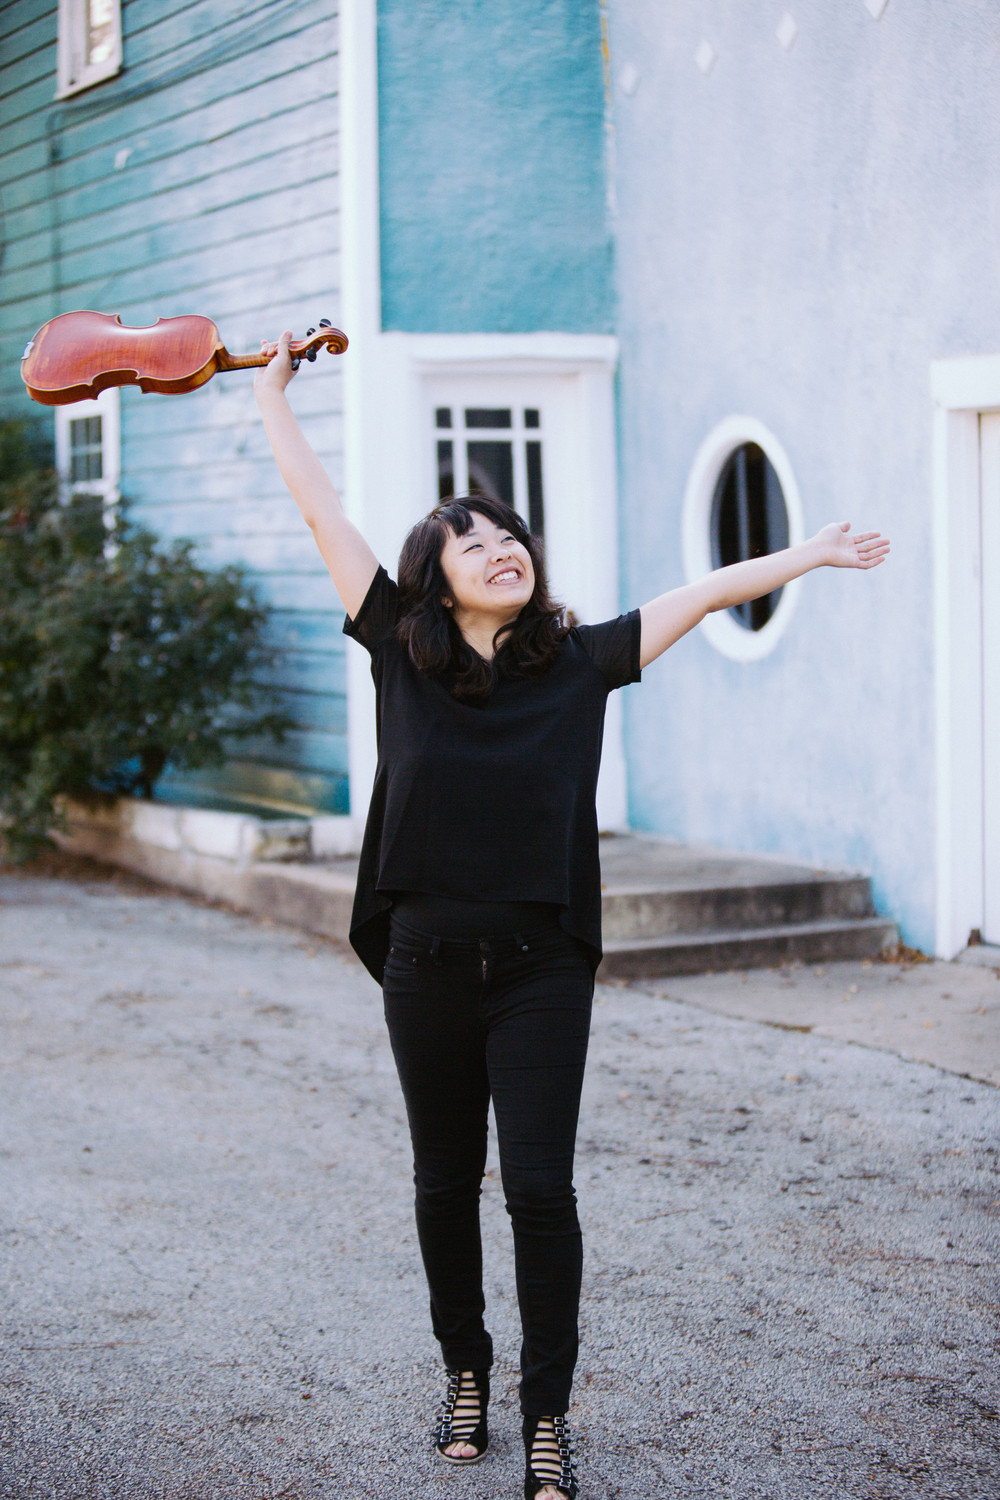 Grace Youn Austin Texas Violinist YouTuber by The Finches